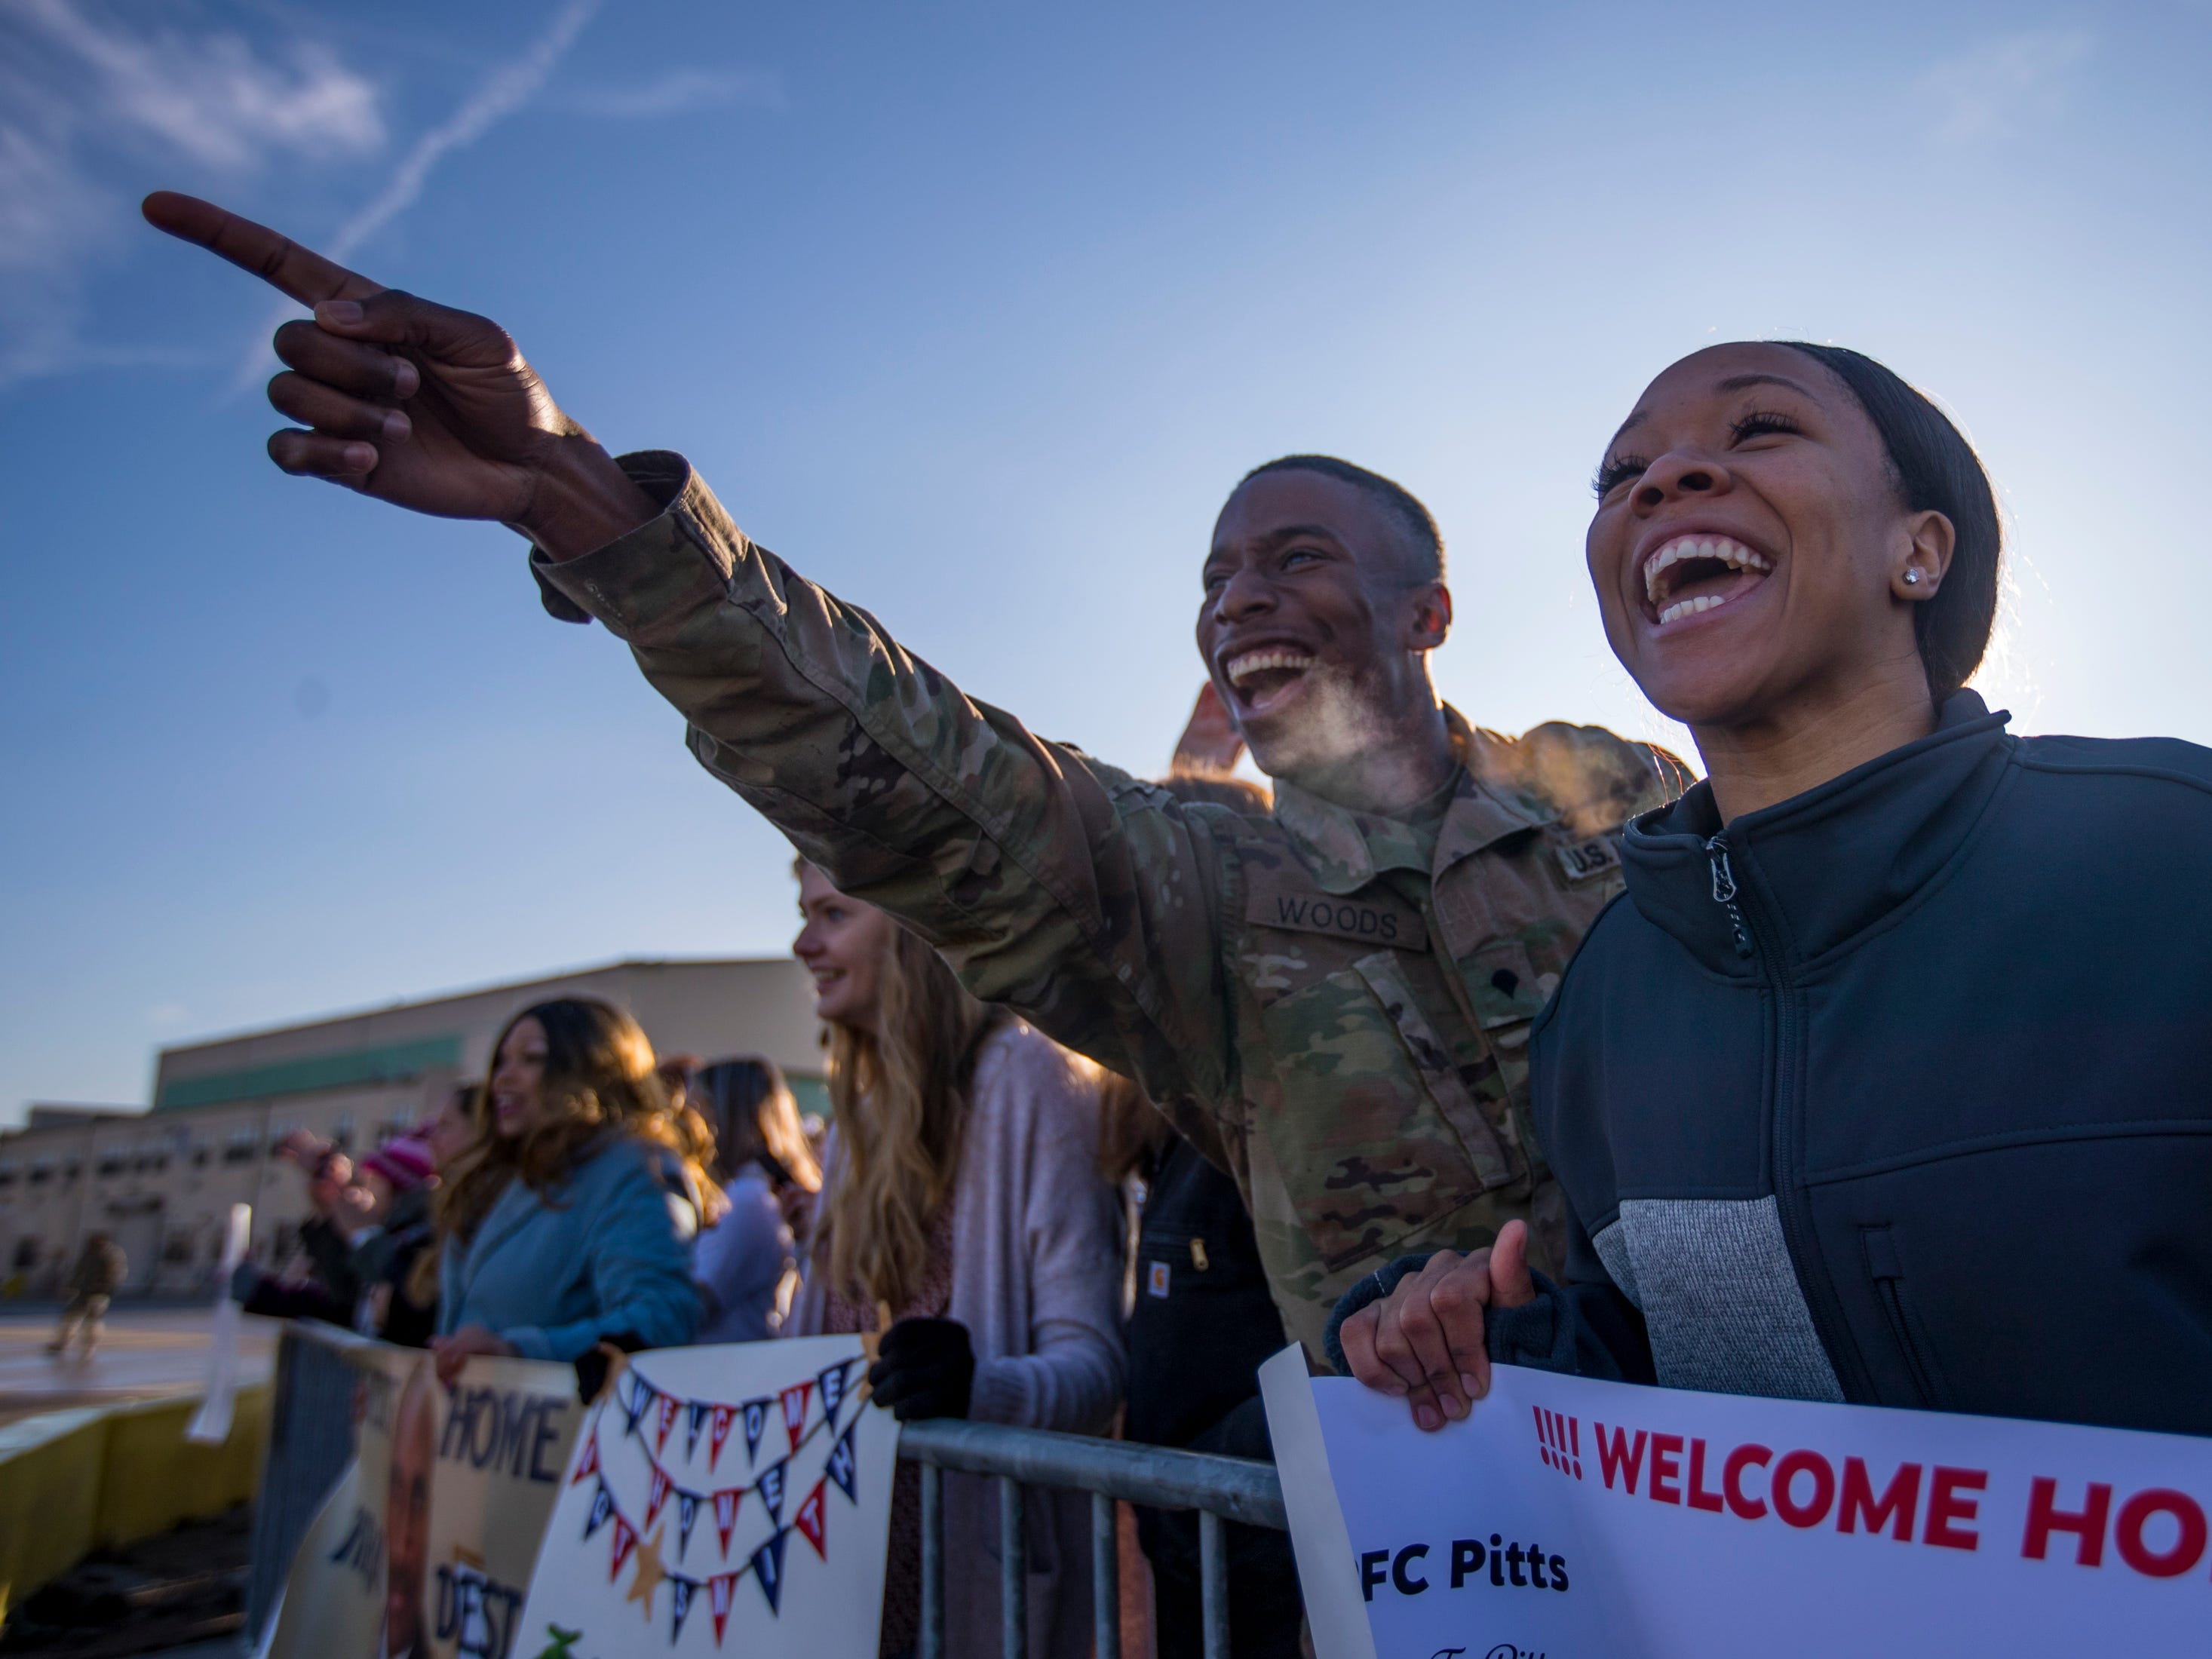 Spc. Woodrow Woods IV points out Spc. Curtis Keaton as he deplanes, while Keaton's girlfriend, Tiara Patterson, cheers during a homecoming ceremony for members of the 101st Combat Aviation Brigade and 101st Sustainment Brigade at Fort Campbell in Clarksville on Thursday, Feb. 21, 2019. The soldiers were returning from a nine-month deployment to Afghanistan.